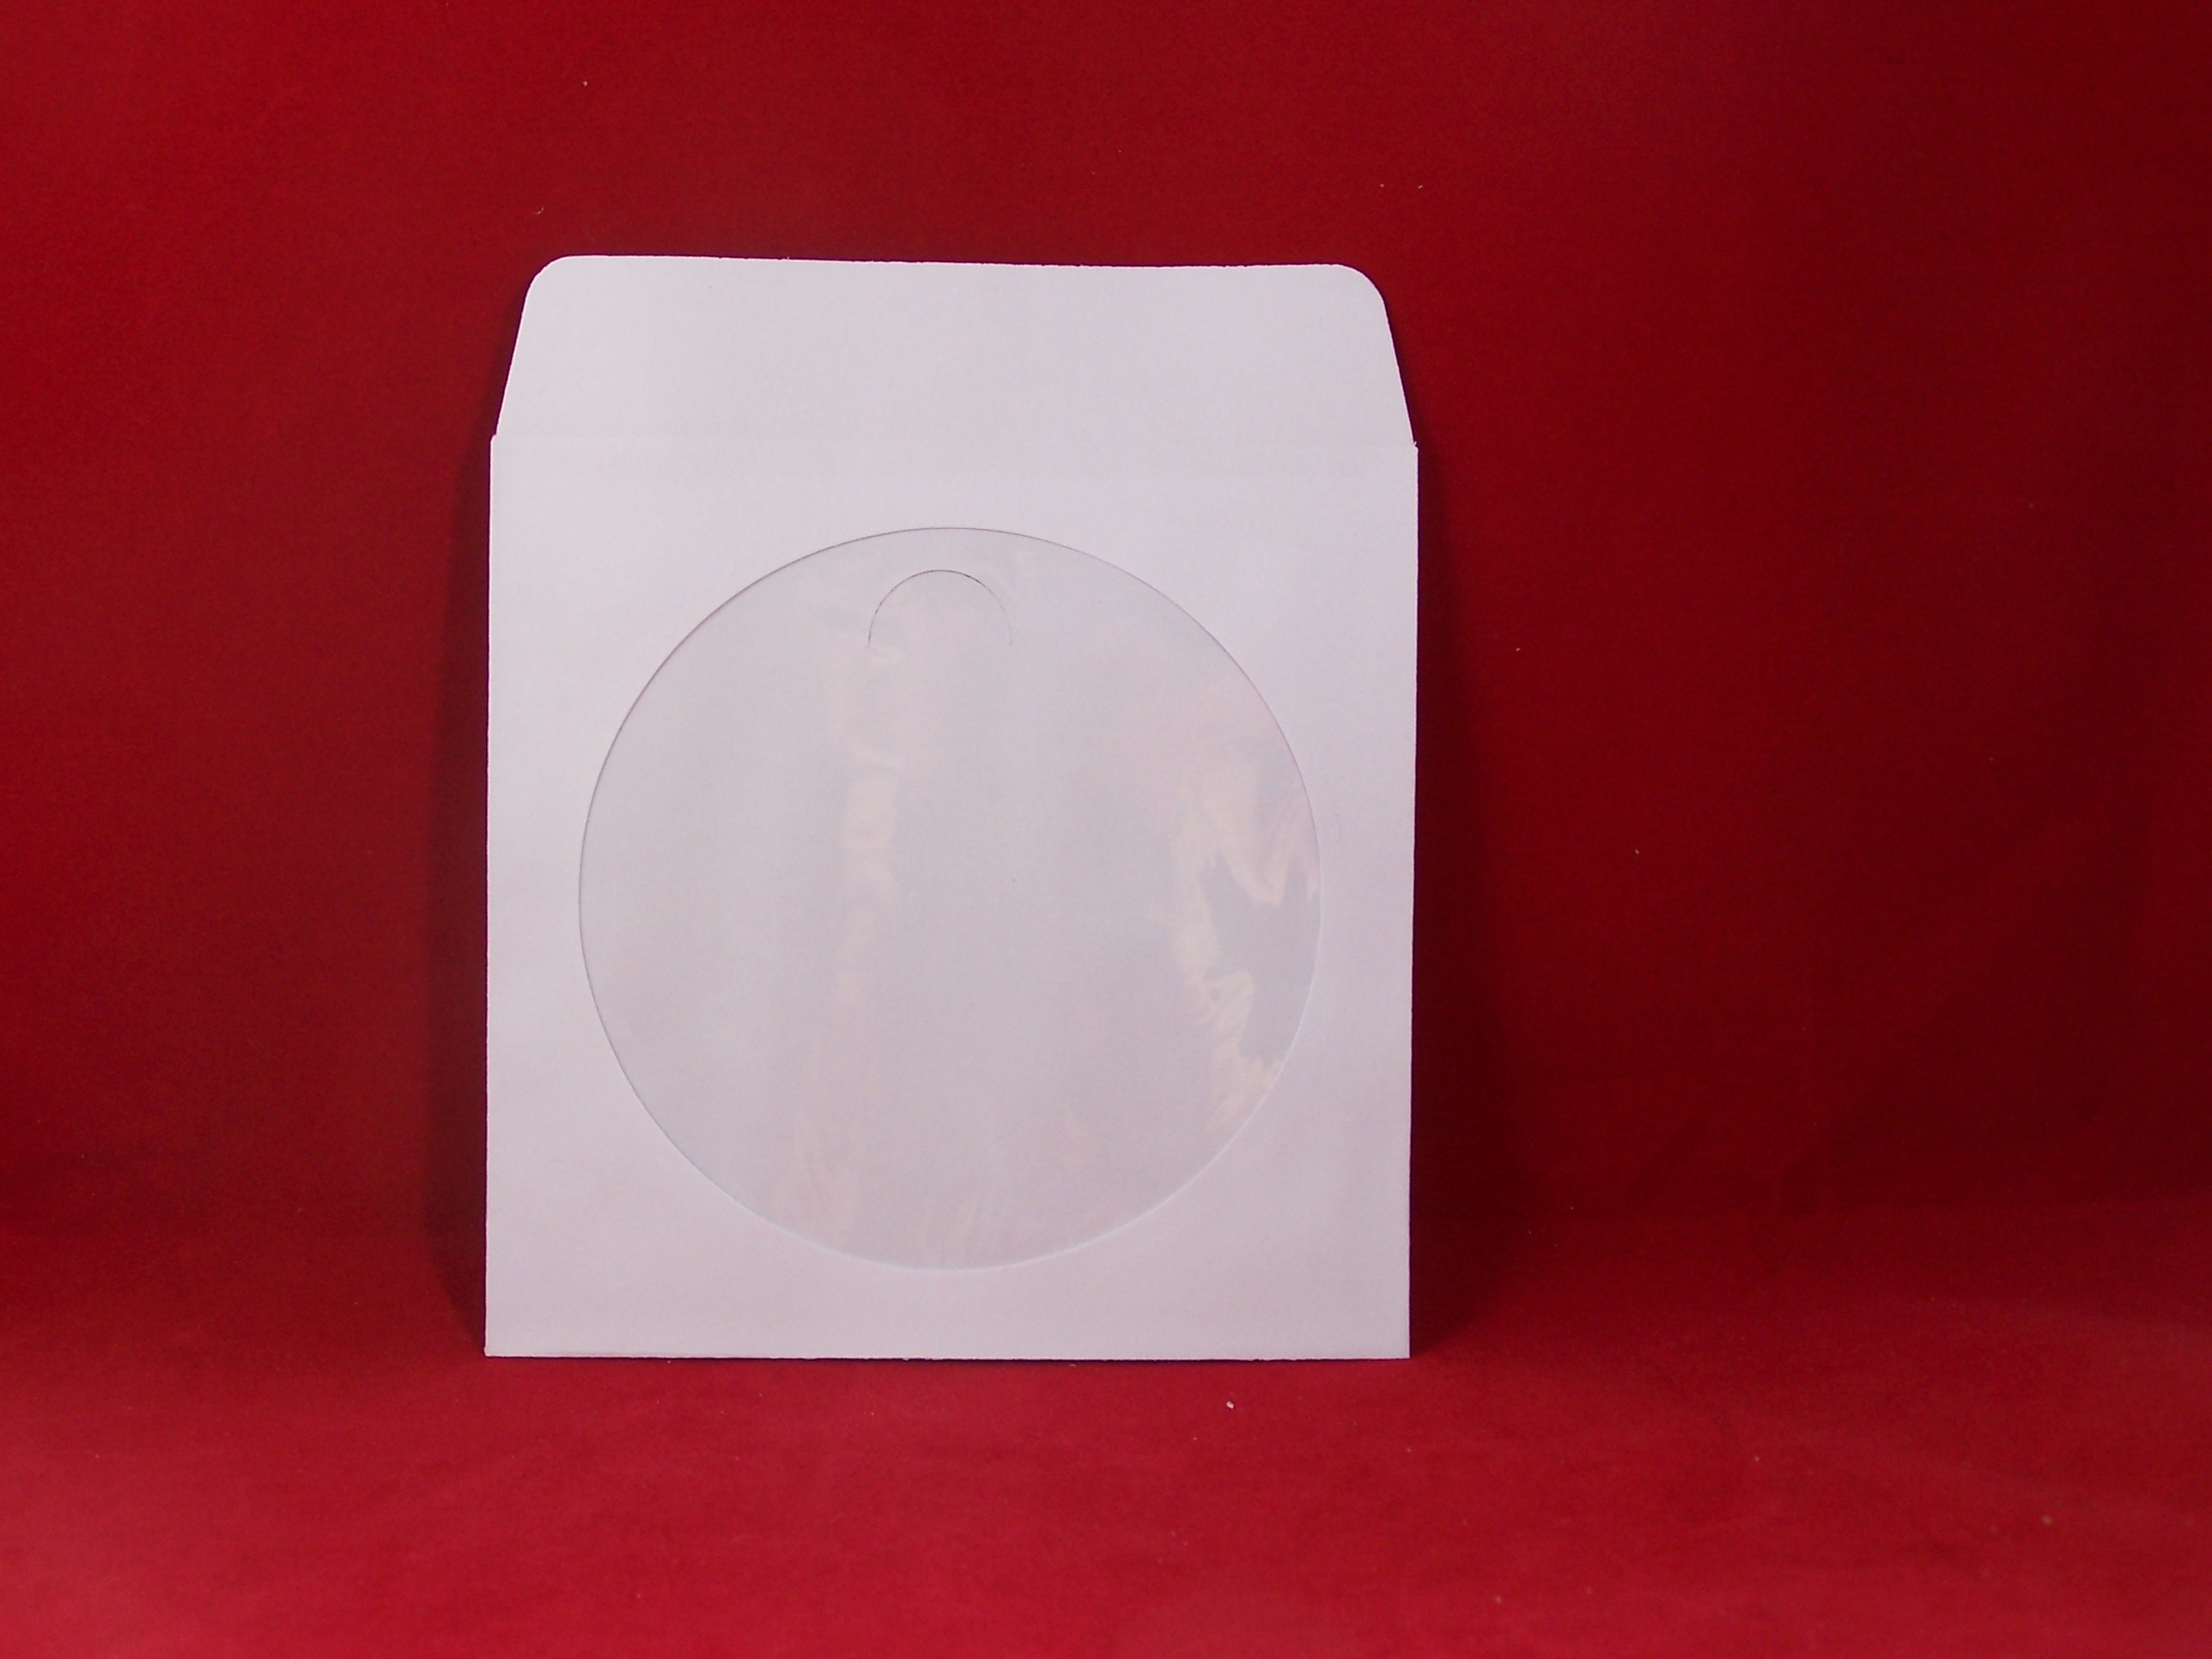 Buy online on paper adhesive flap and back adhesive for 100 paper cd sleeves with window flap